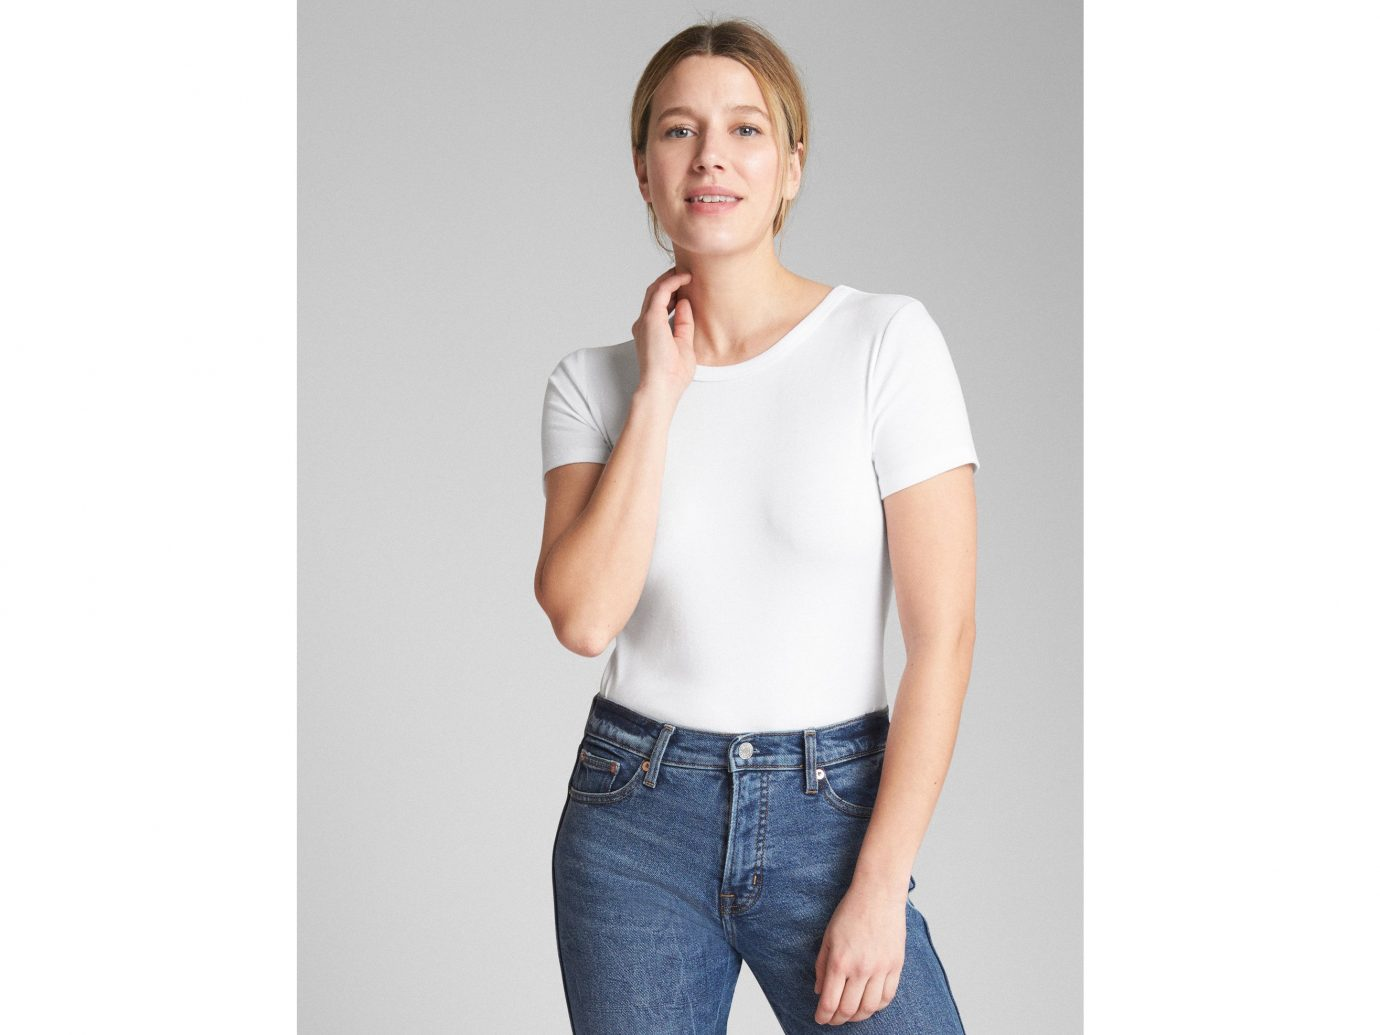 Spring Travel Style + Design Summer Travel Travel Lifestyle Travel Shop person wall clothing white indoor standing shoulder posing t shirt sleeve neck joint fashion model muscle jeans waist trouser